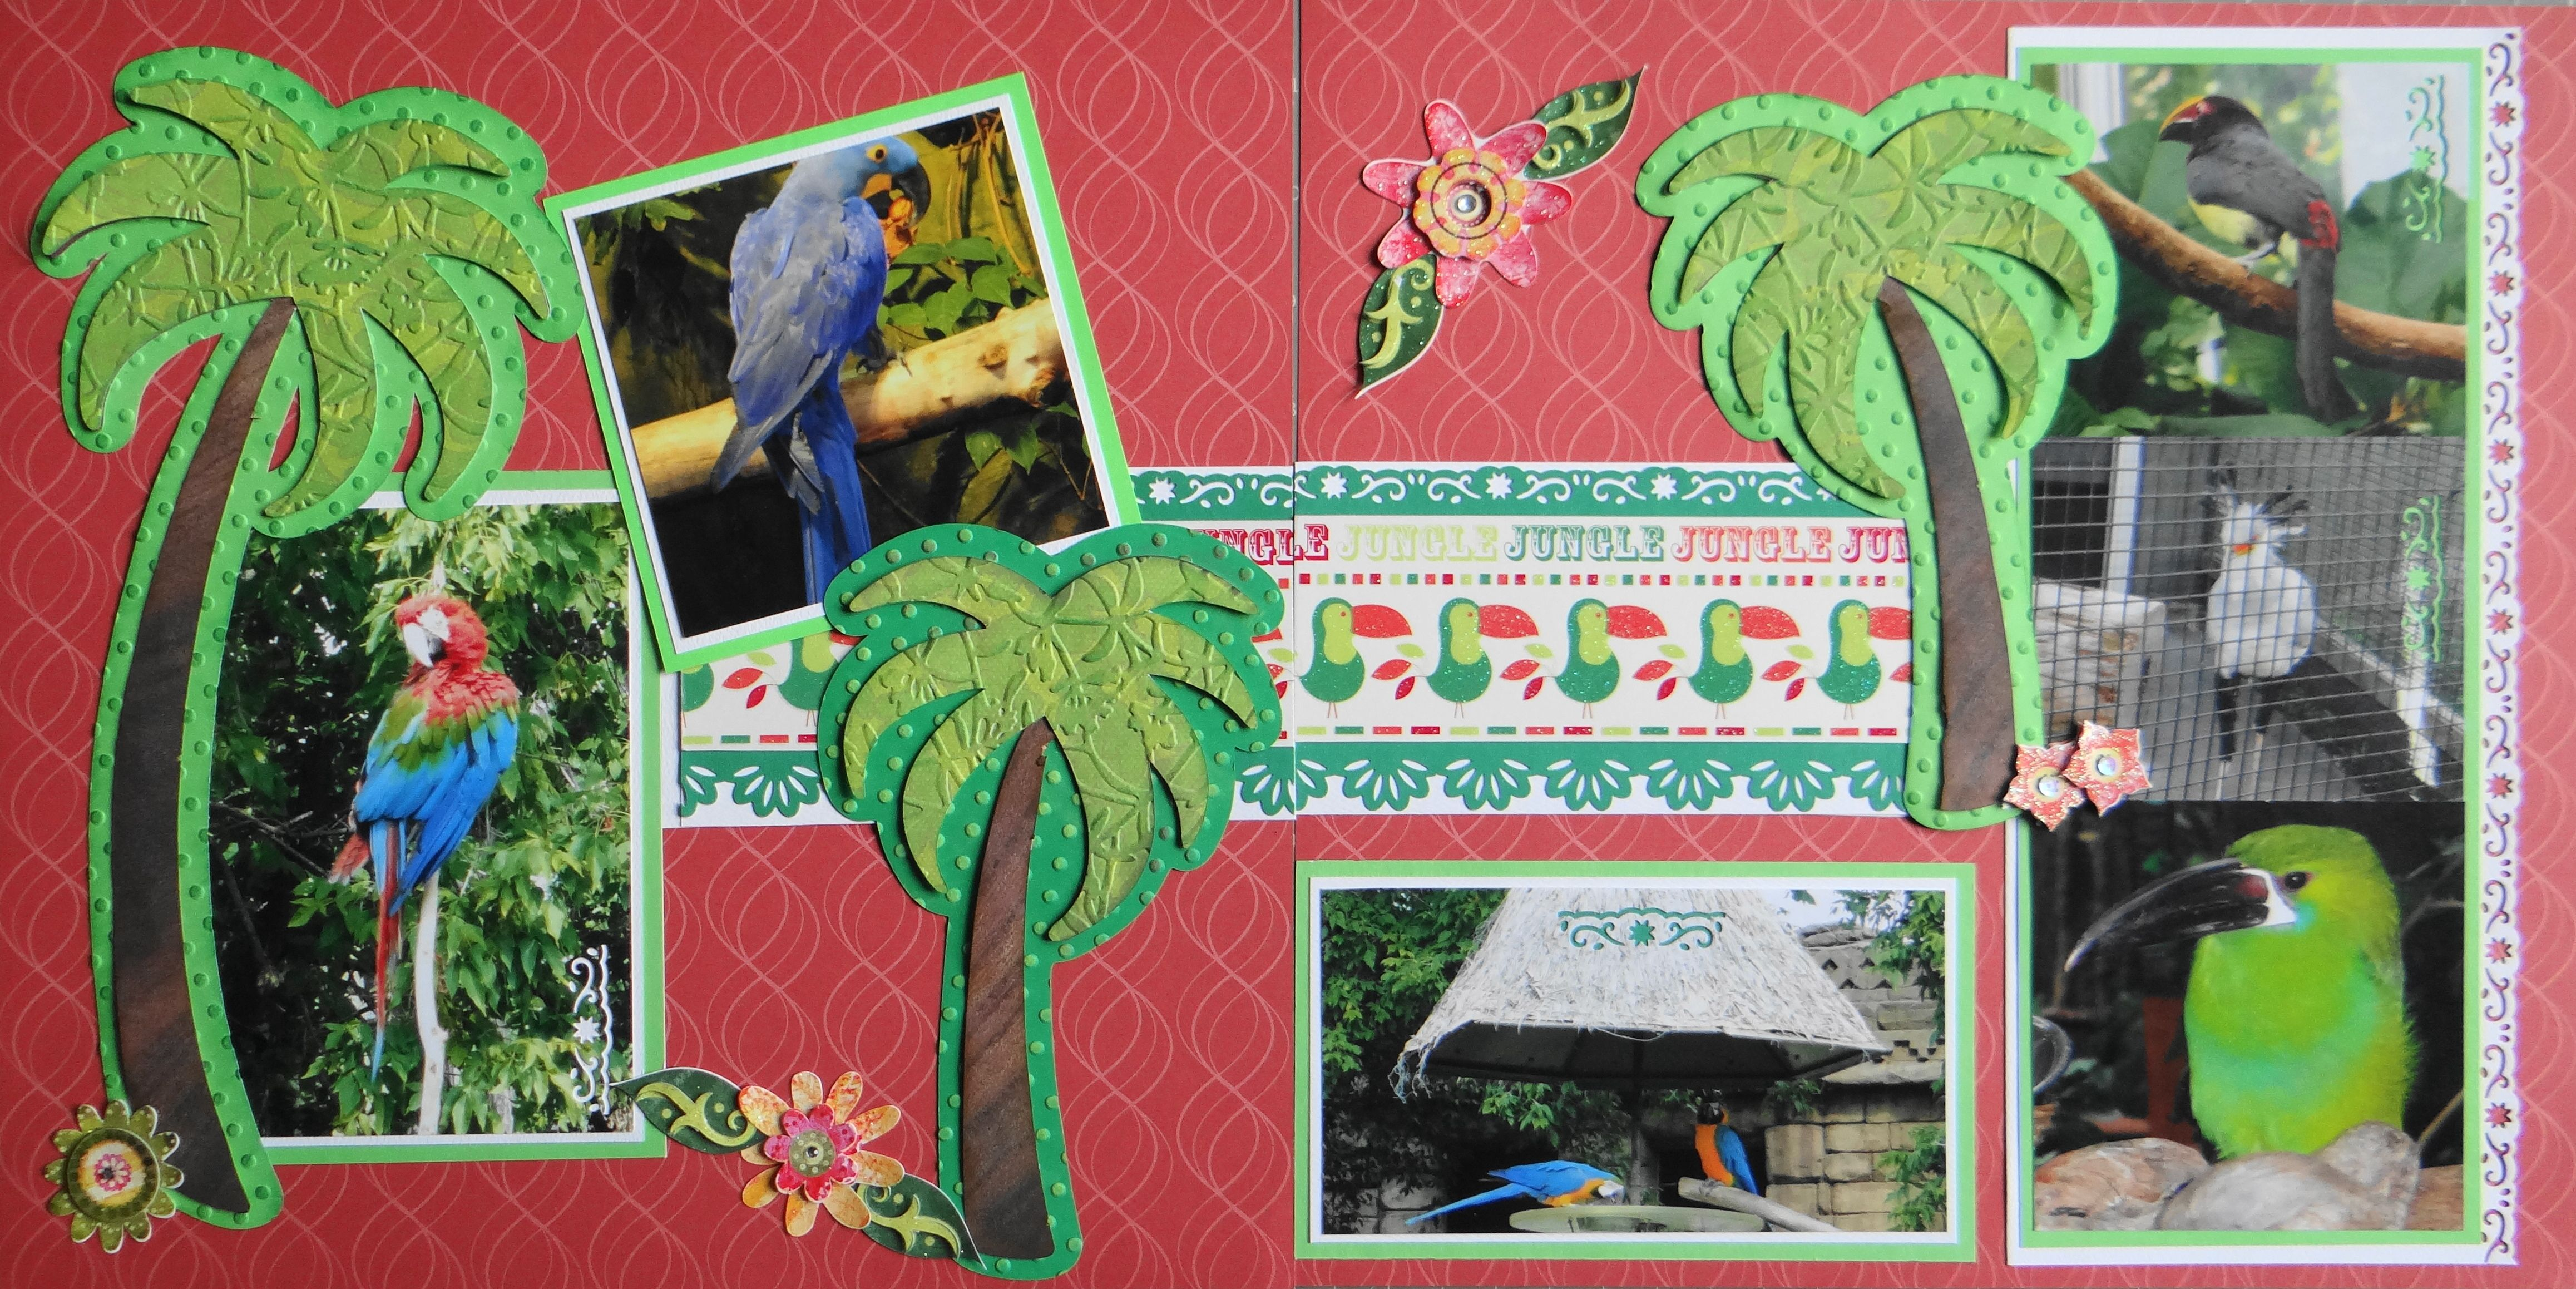 Scrapbook ideas zoo - Scrapbook Page Tropical Birds At The Zoo 2 Page Animal Layout With A Palm